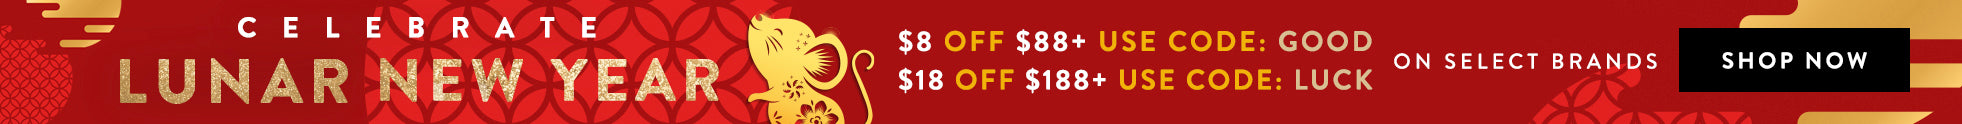 Lucky Lunar New Year - $8 OFF $88+ or $18 OFF $188+